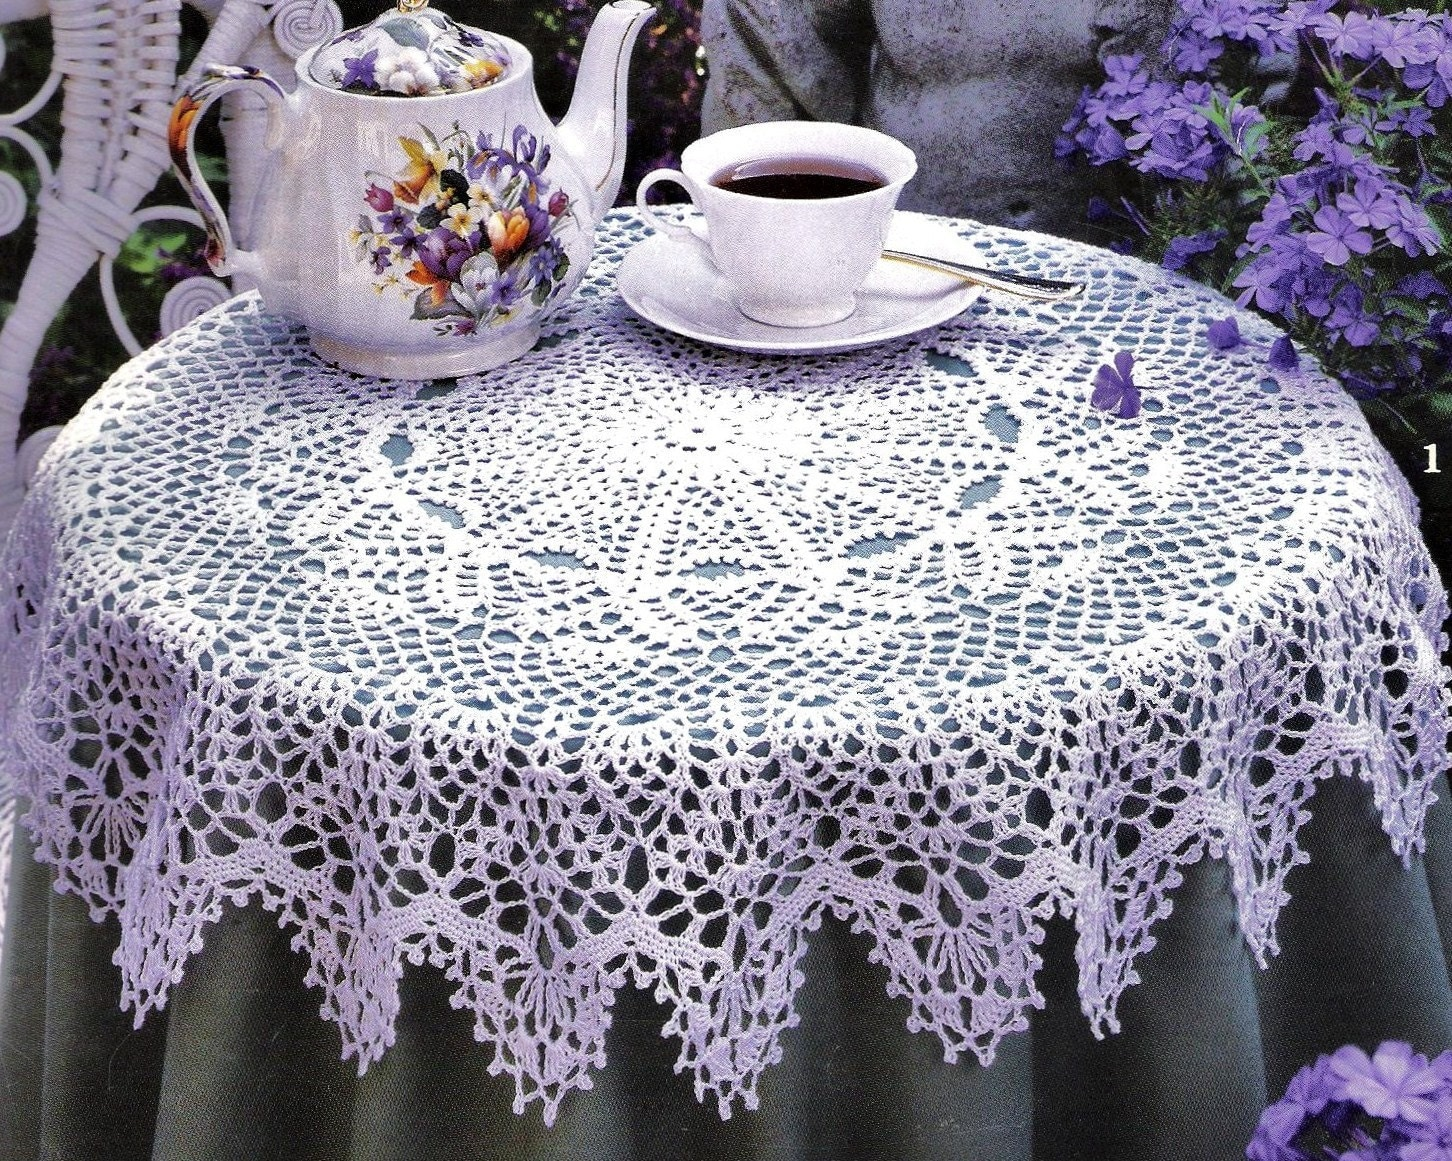 Crochet Tablecloth Pattern : Round Crochet Tablecloth Patterns Booklet by StitchySpot on Etsy